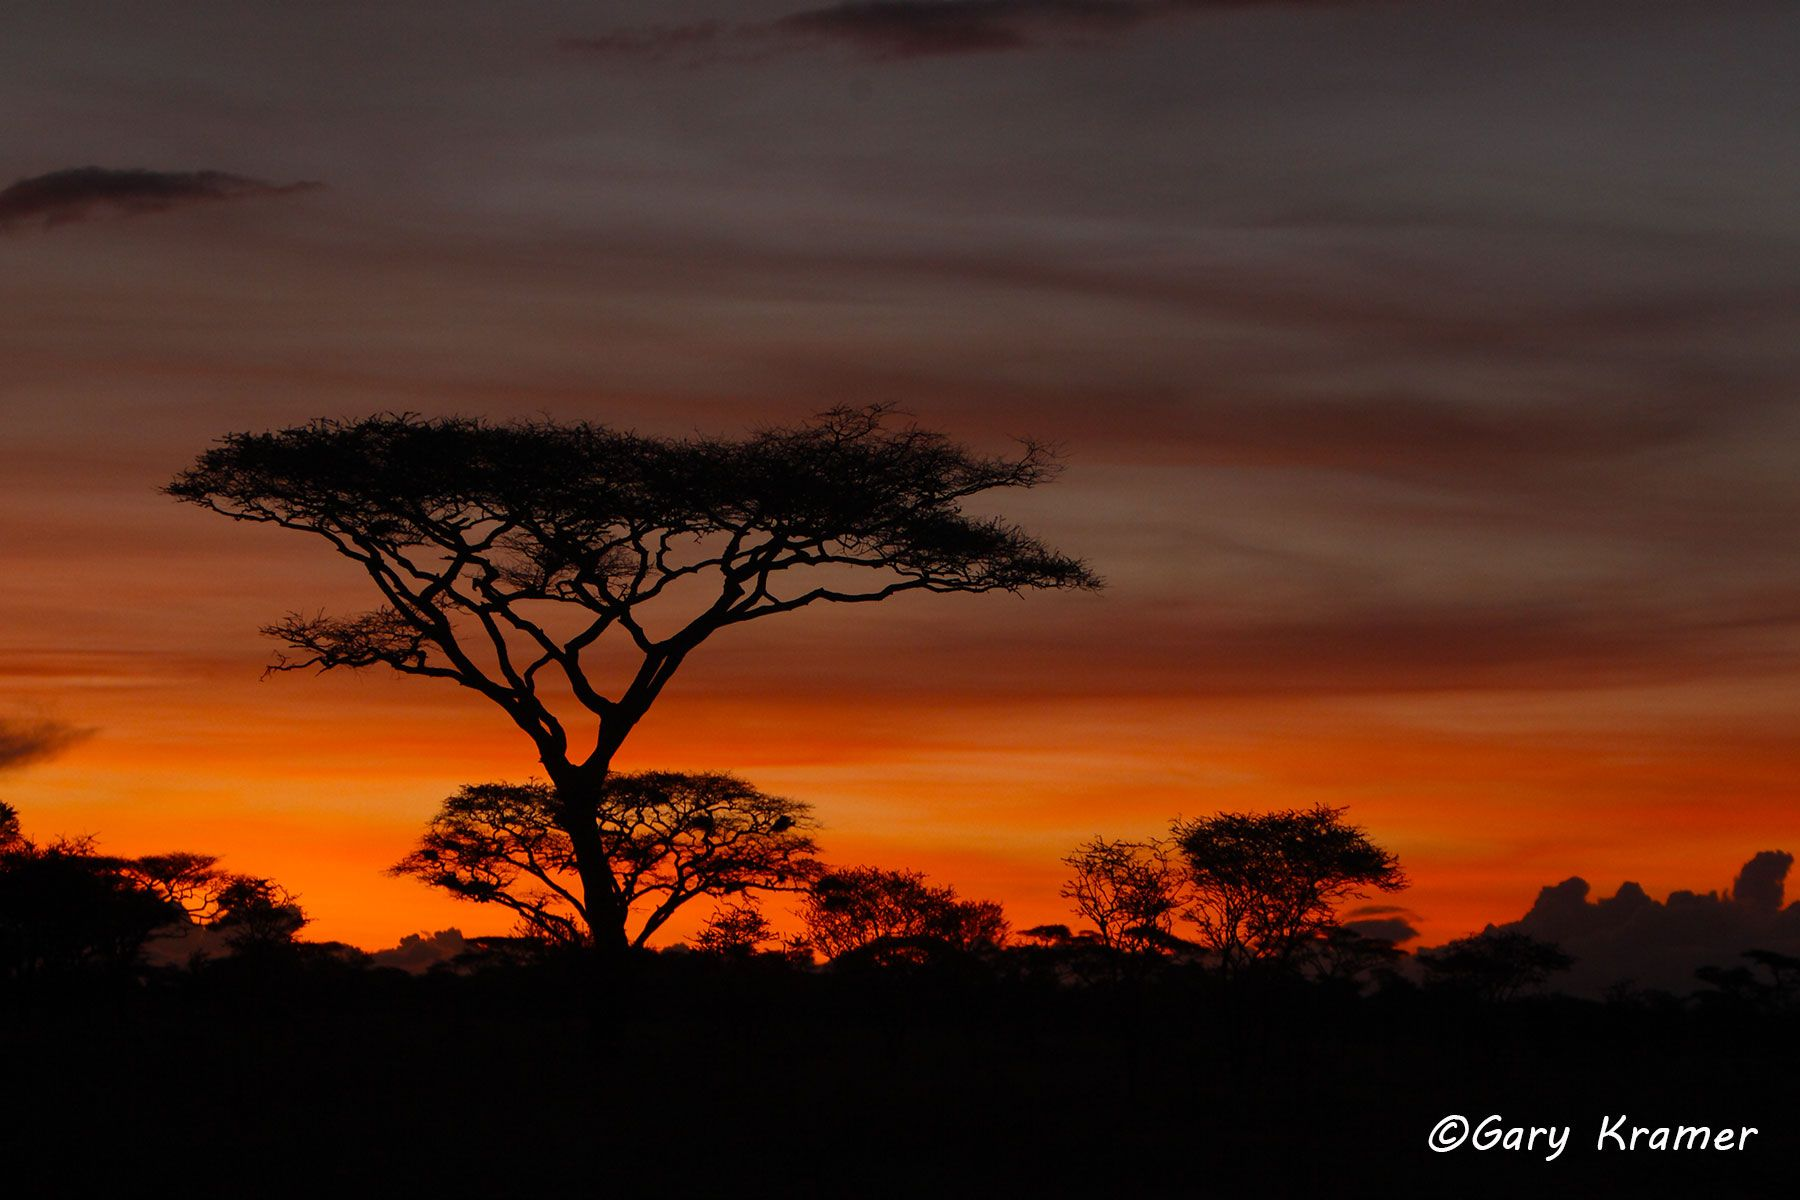 Sunset at Serengeti National Park, Tanzania - ATSs#001d